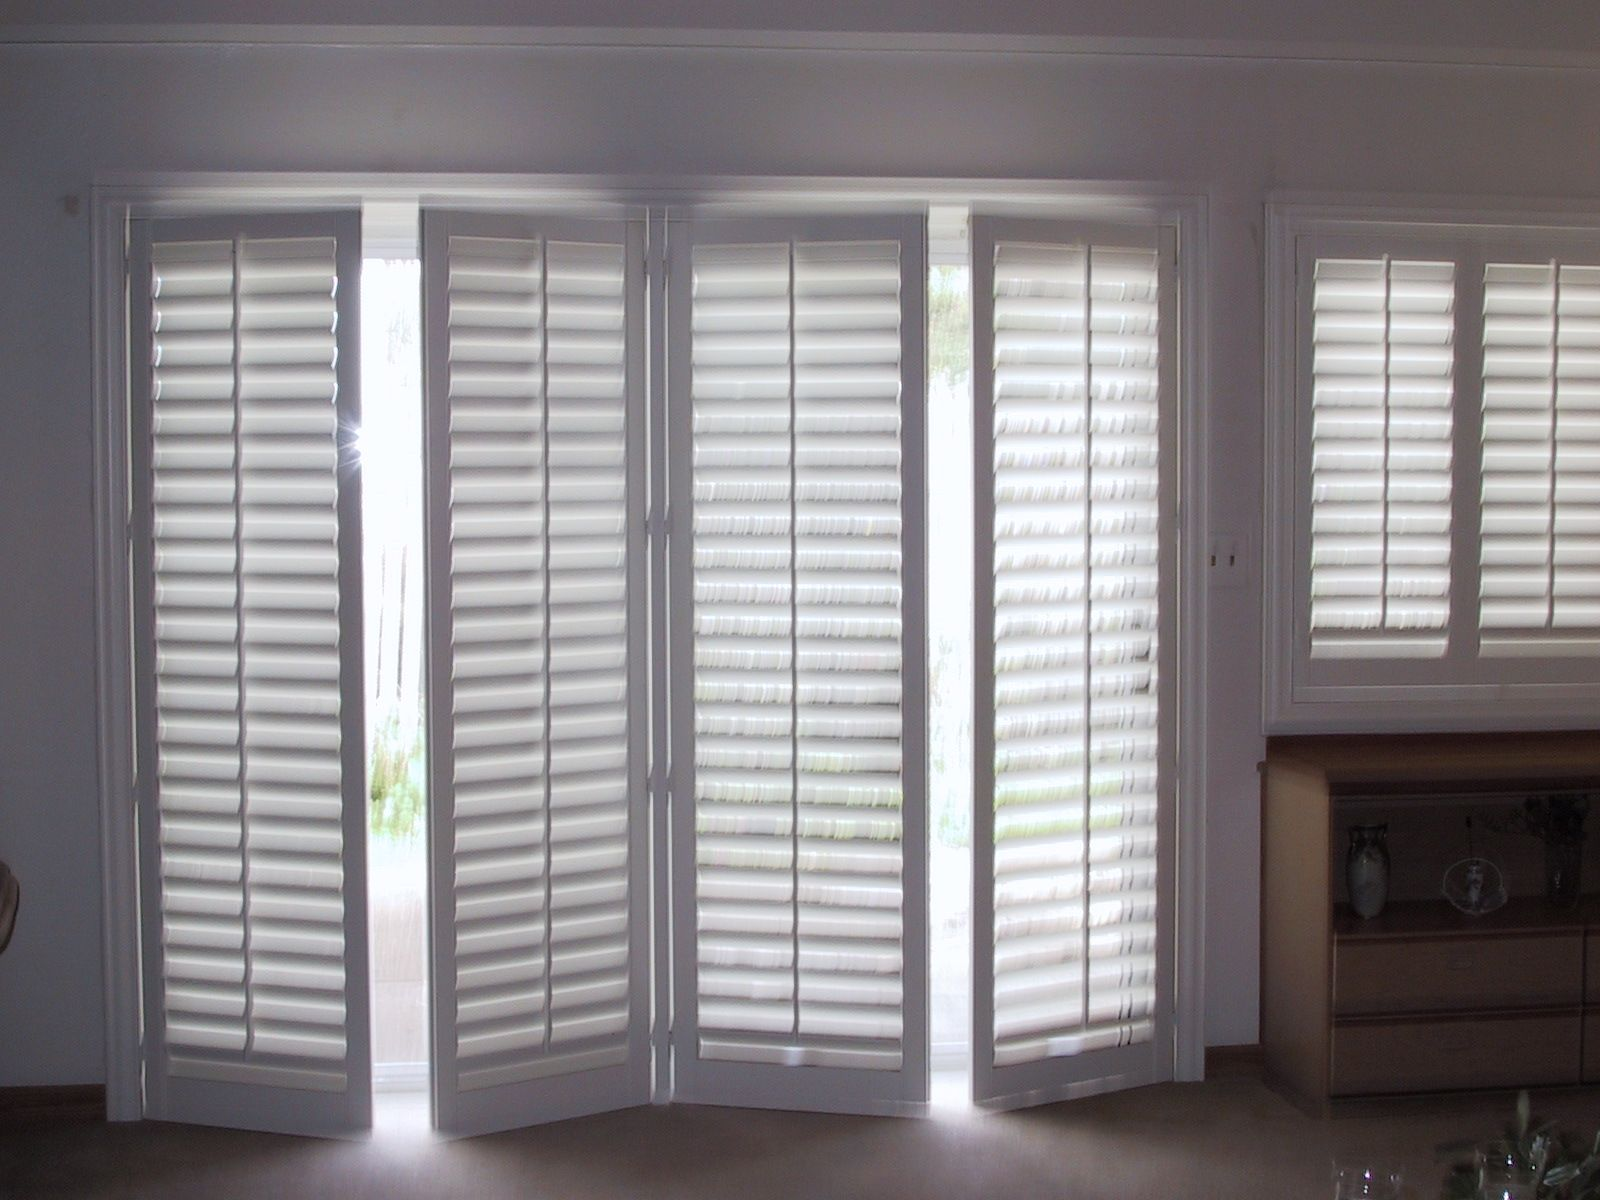 Discover Danmer California S Premier Provider Of Custom Window Treatments Quality Coverings Including Shutters Blinds And Shades For Over 30